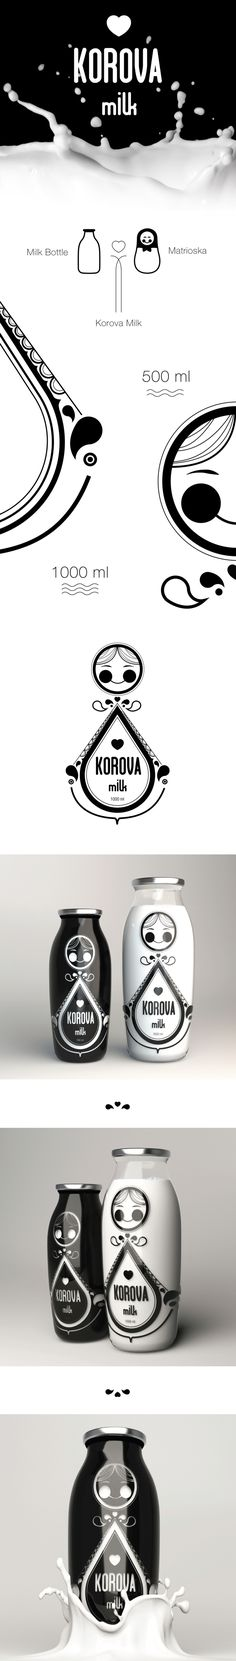 Korova Milk curated by Packaging Diva PD. I just love this milk #identity #packaging don't you?